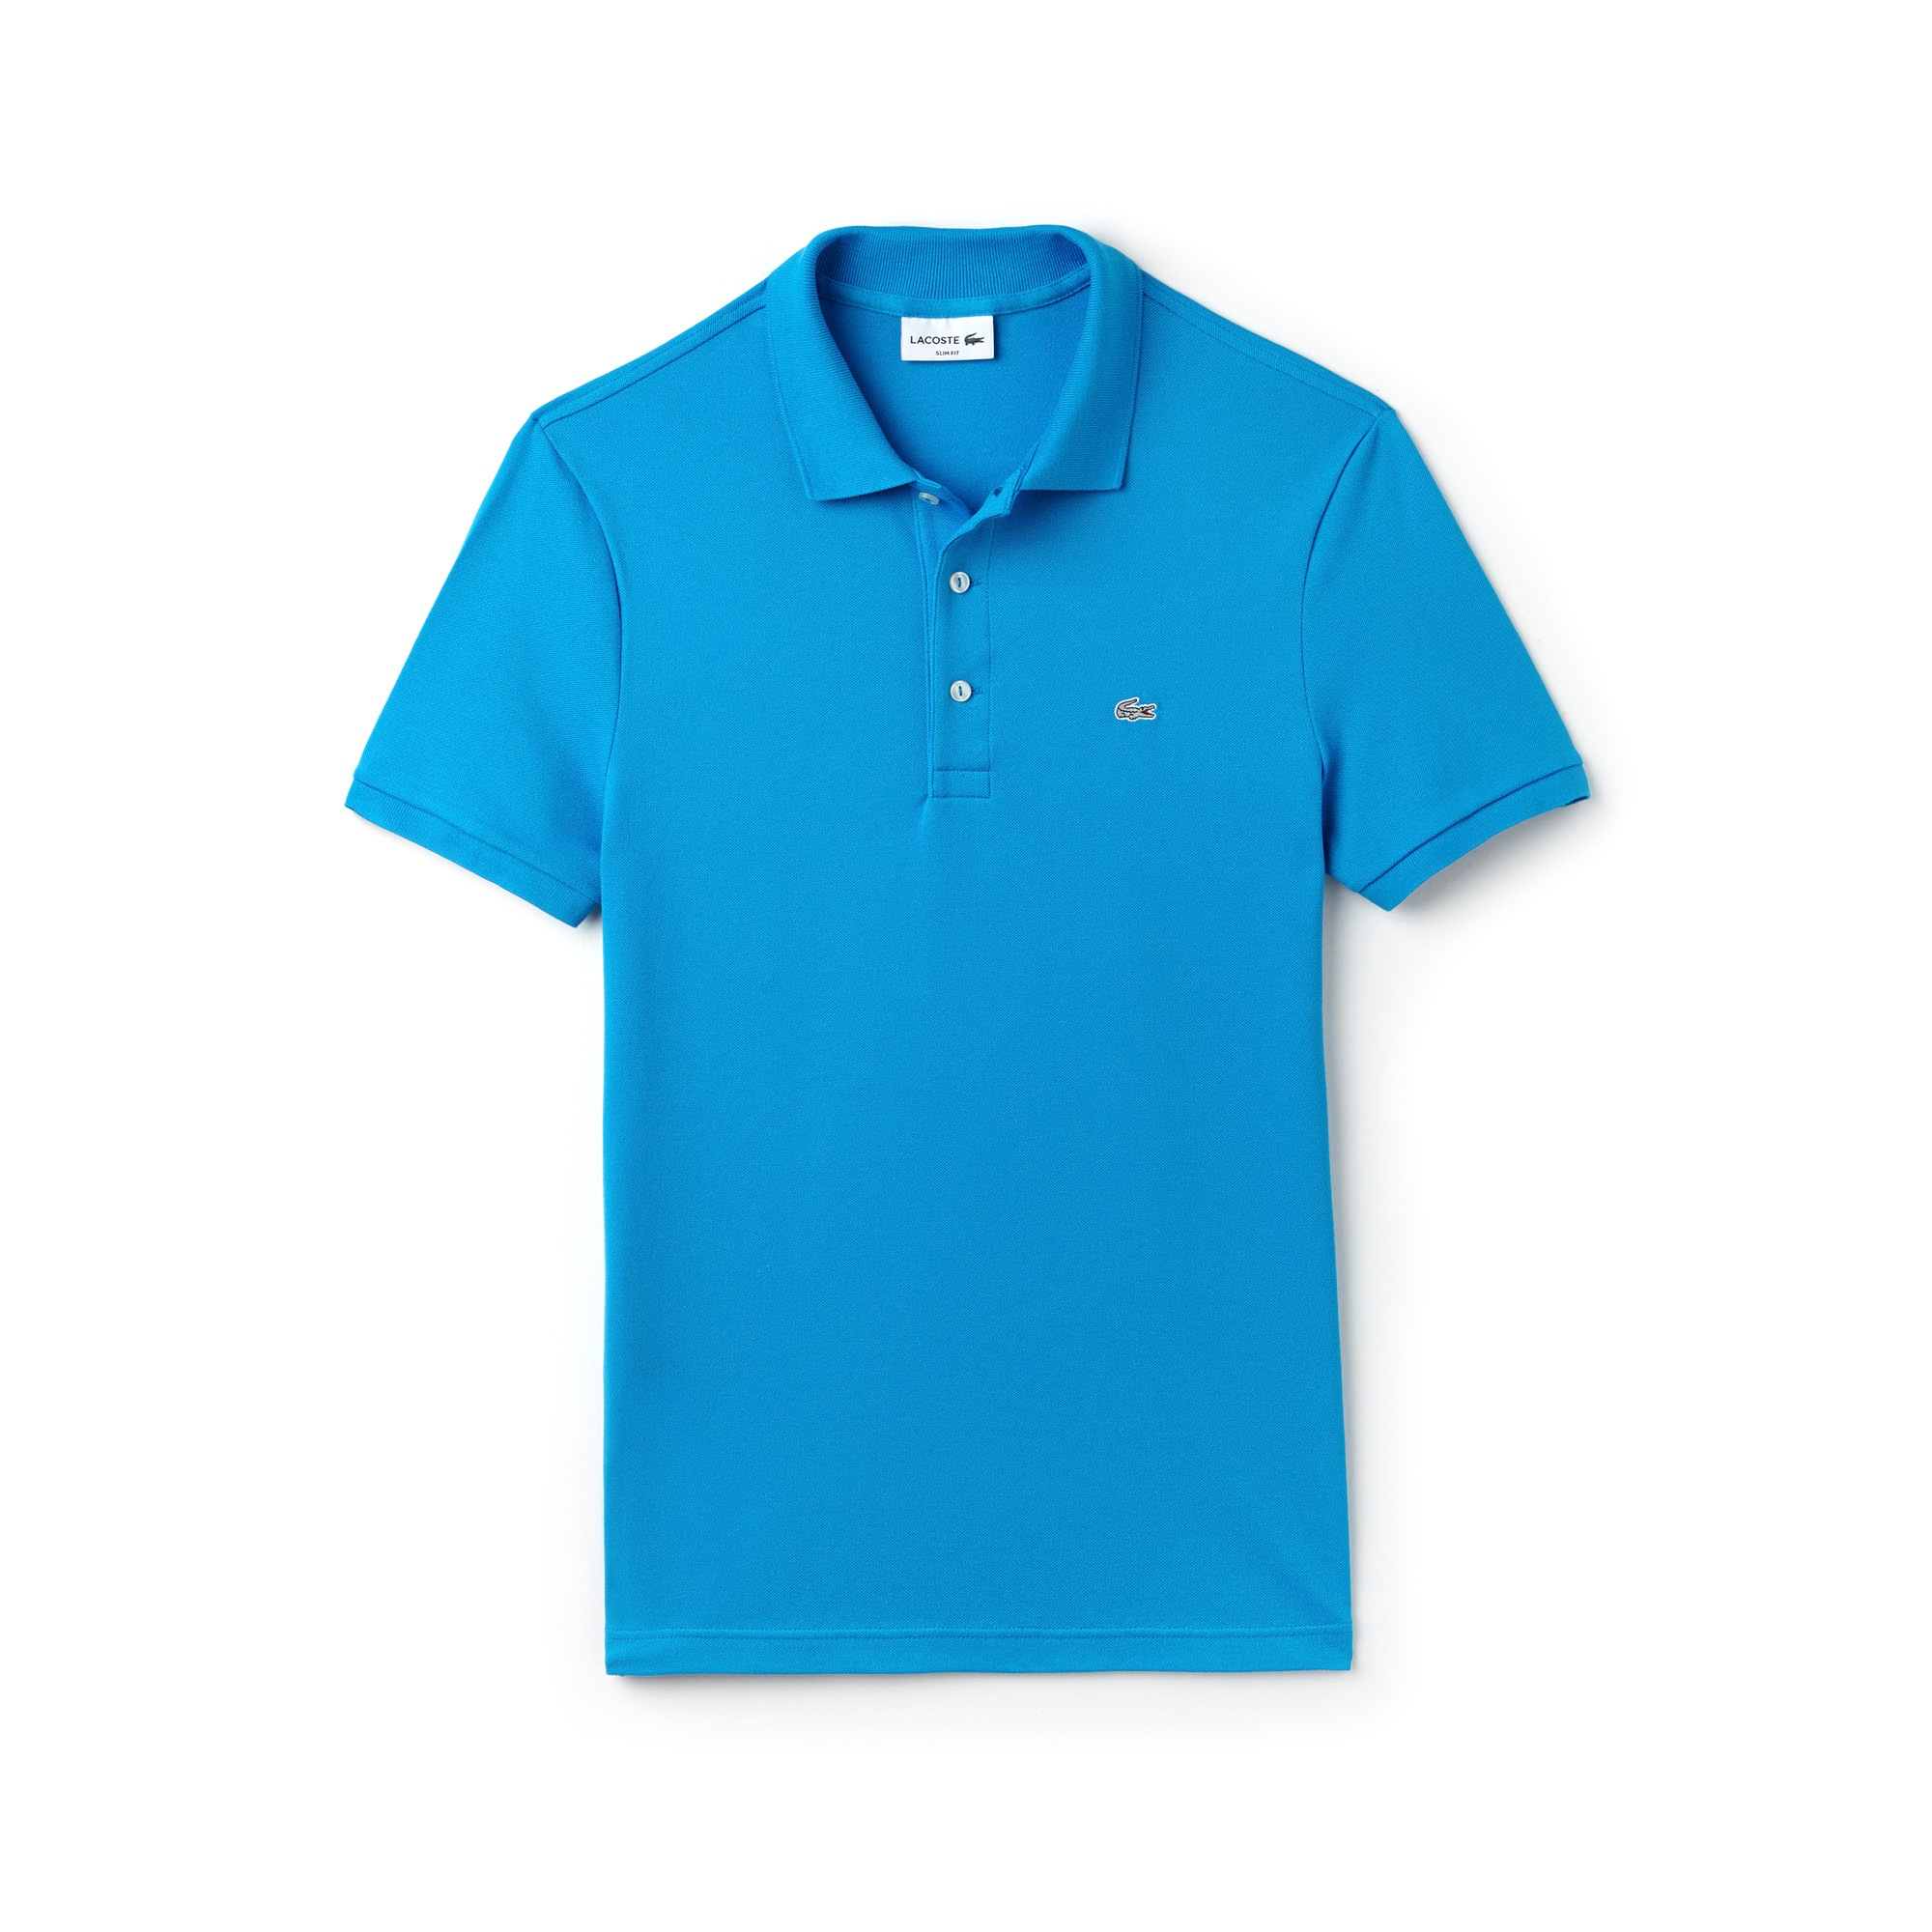 Men's Slim Fit Stretch Piqué Polo Shirt